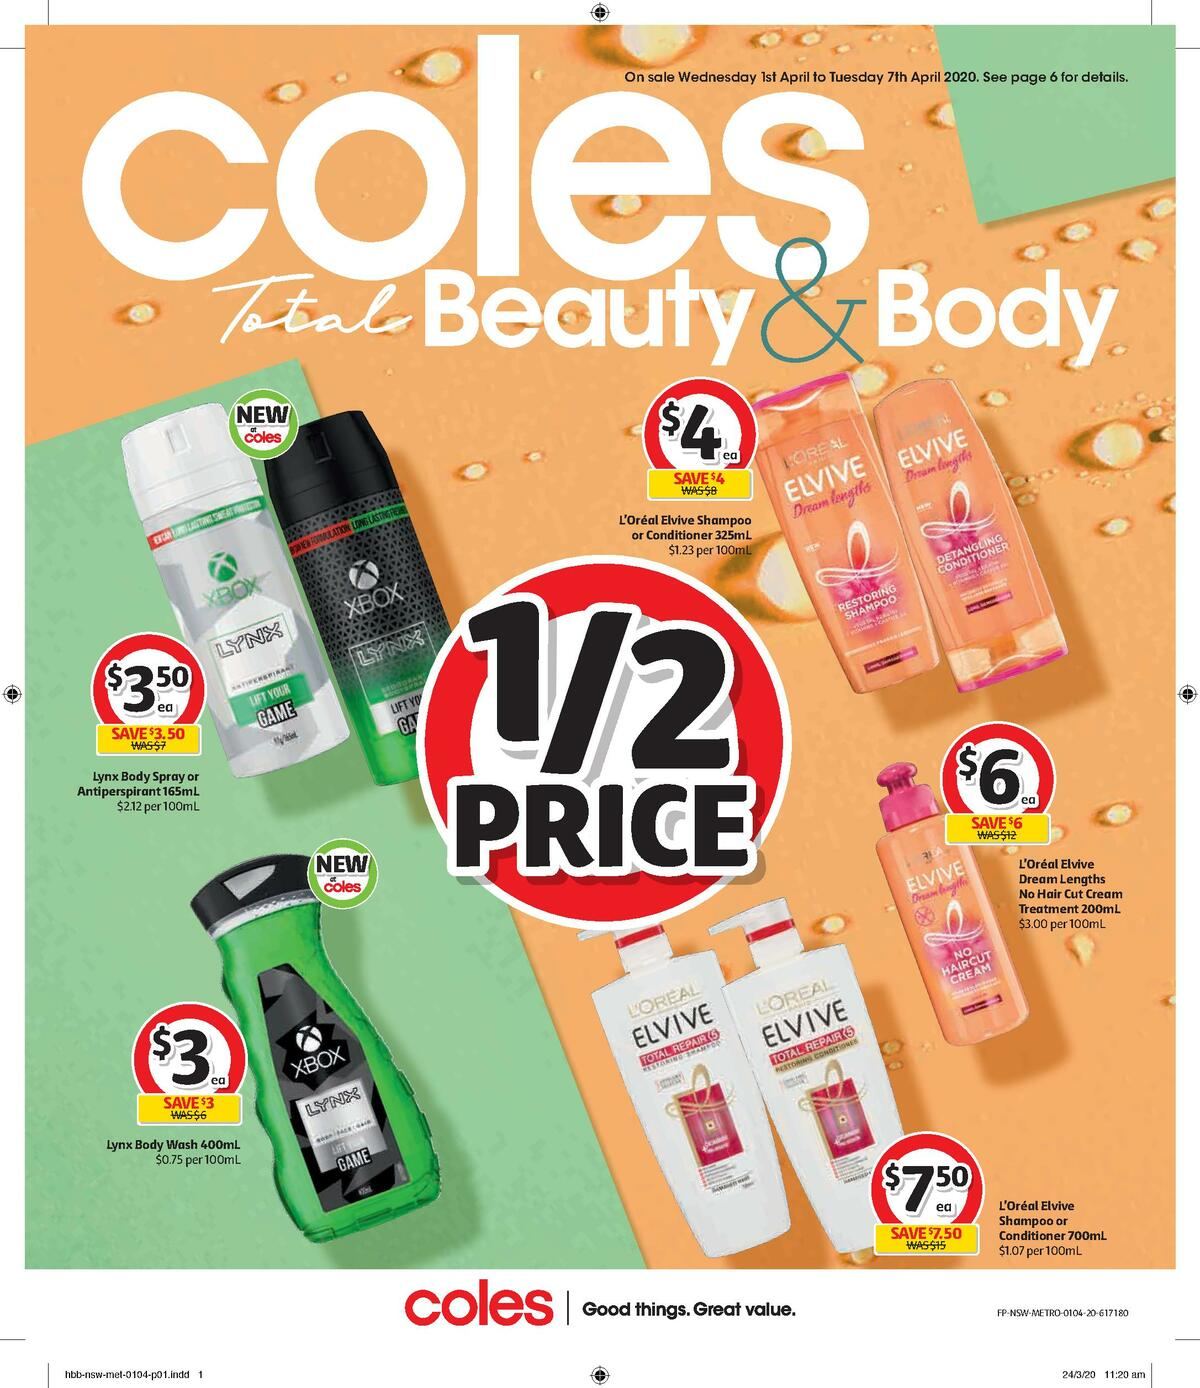 Coles Health & Beauty Catalogues from April 1